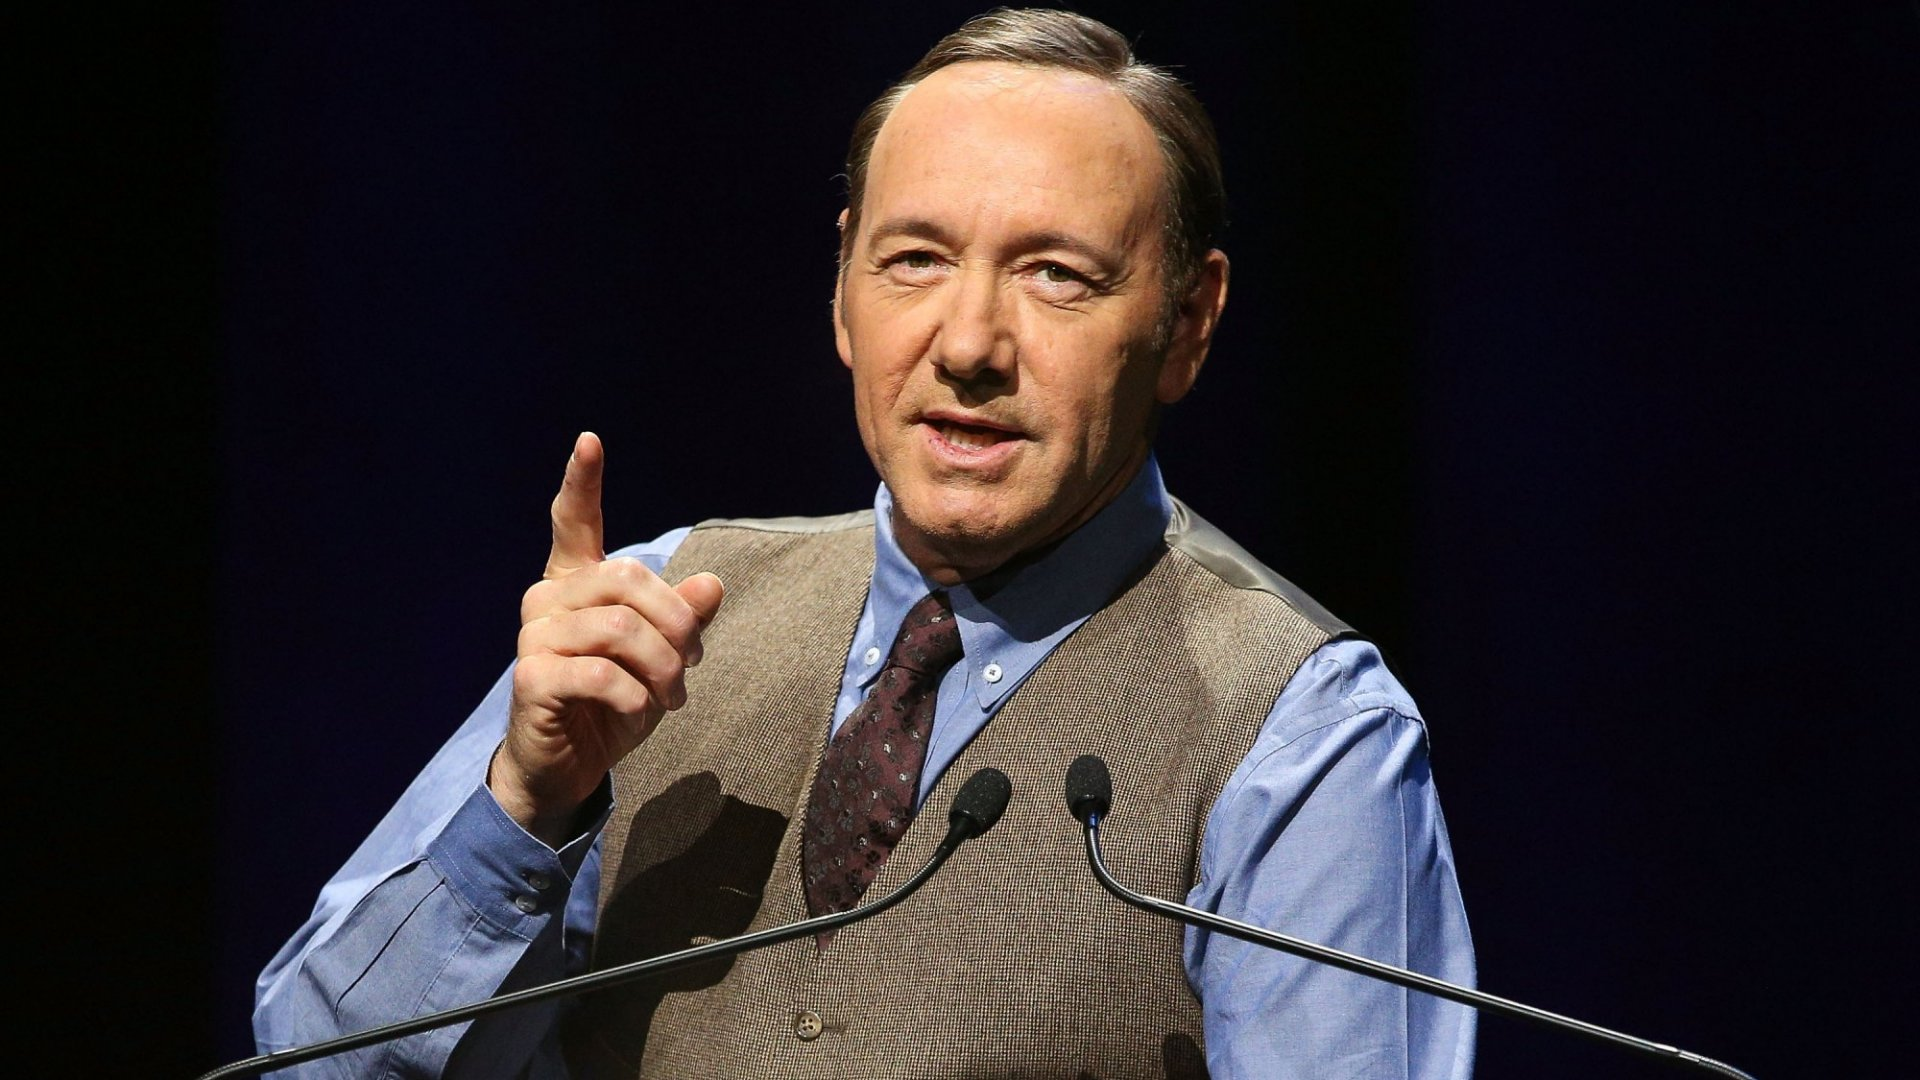 What You Can Learn From Kevin Spacey's Remarkably Bad Public Apology